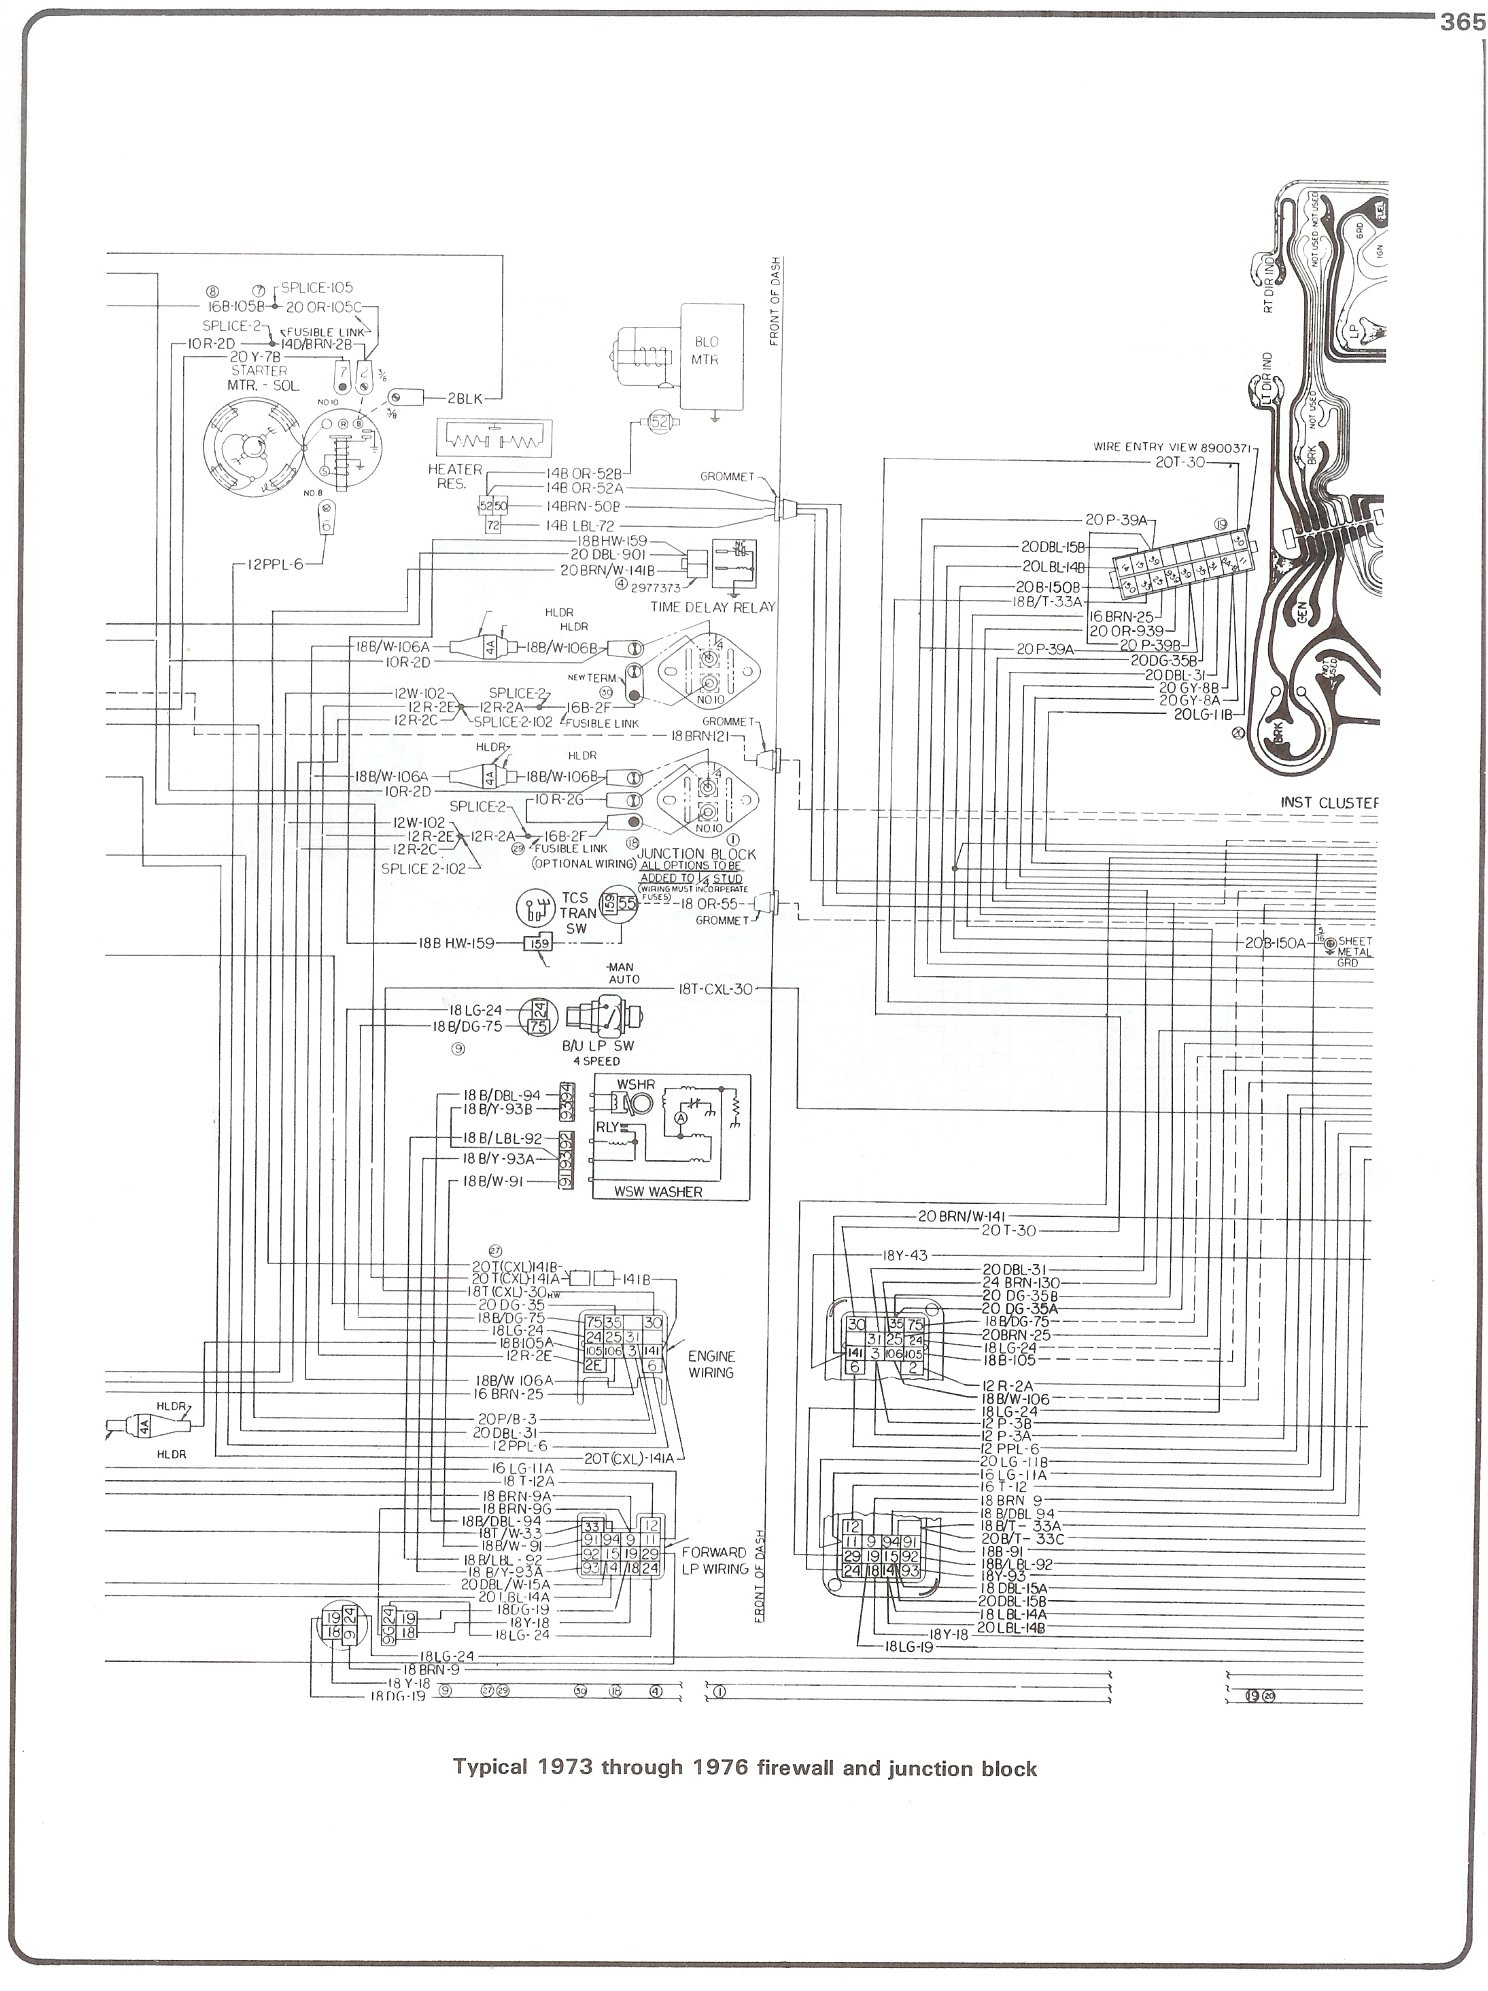 73 76_firewall_junct complete 73 87 wiring diagrams 1978 chevy truck fuse box diagram at gsmx.co